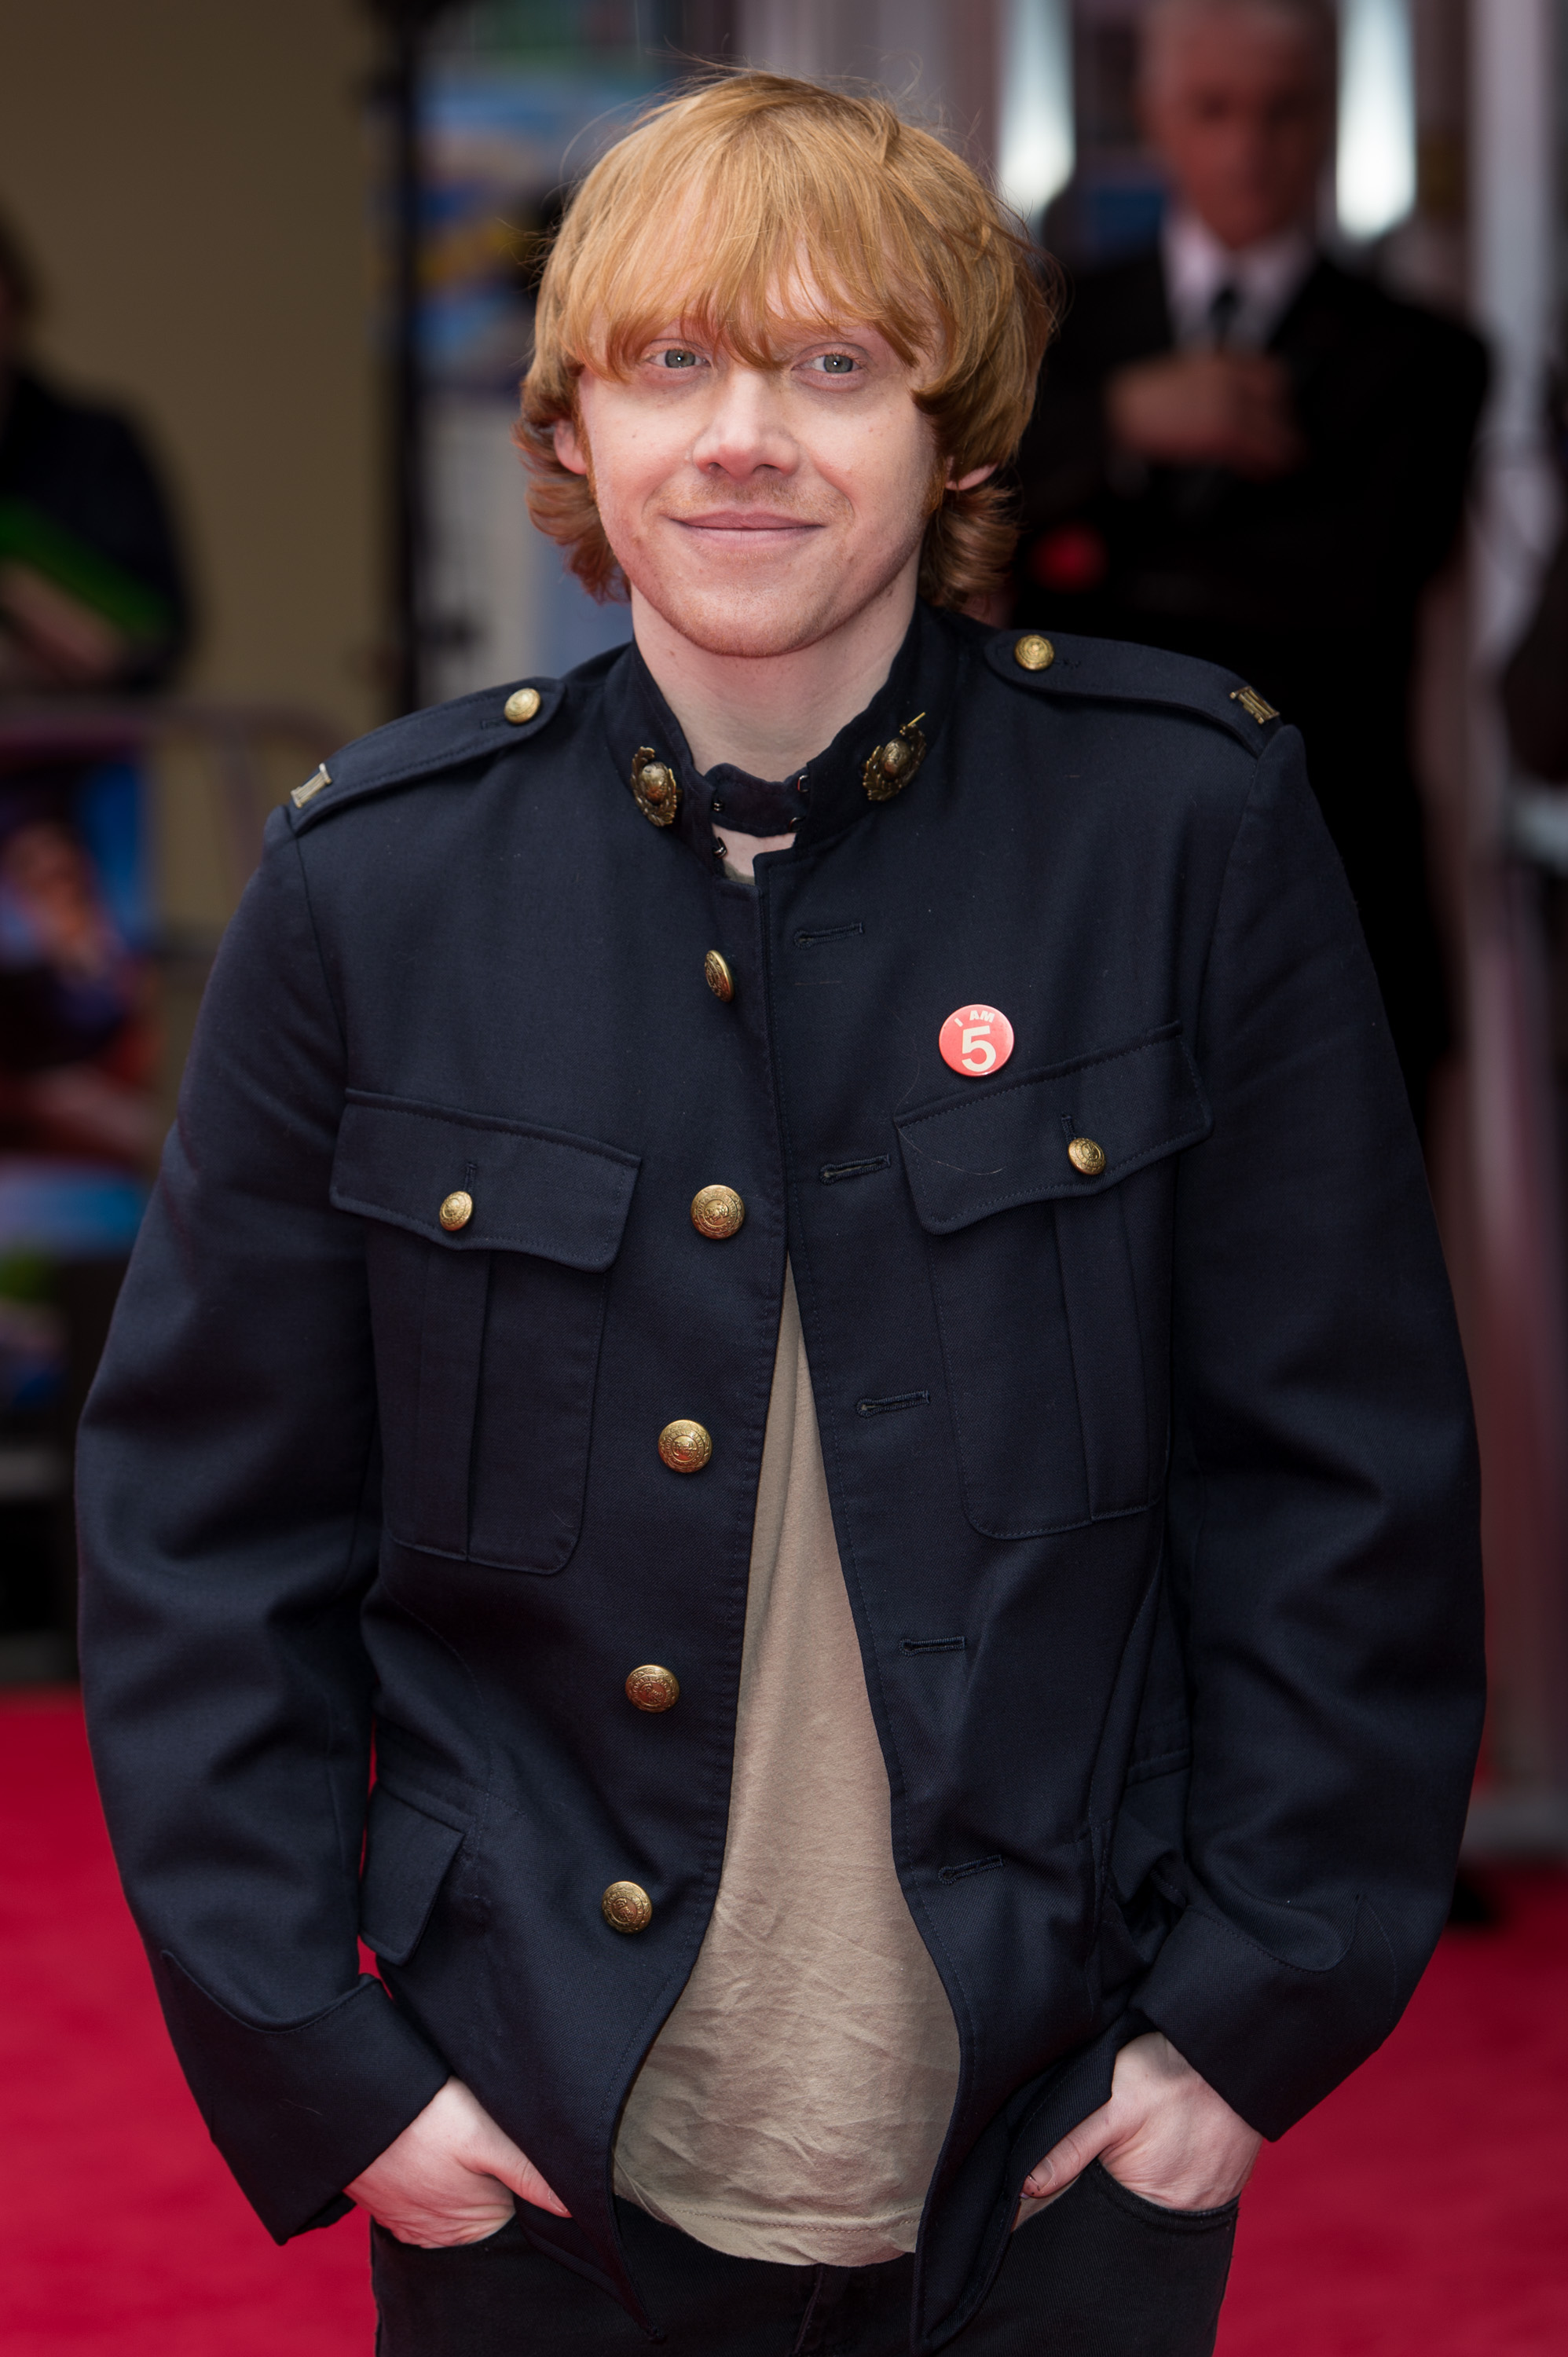 Rupert Grint changed for the sake of his new role 19.07.2018 8